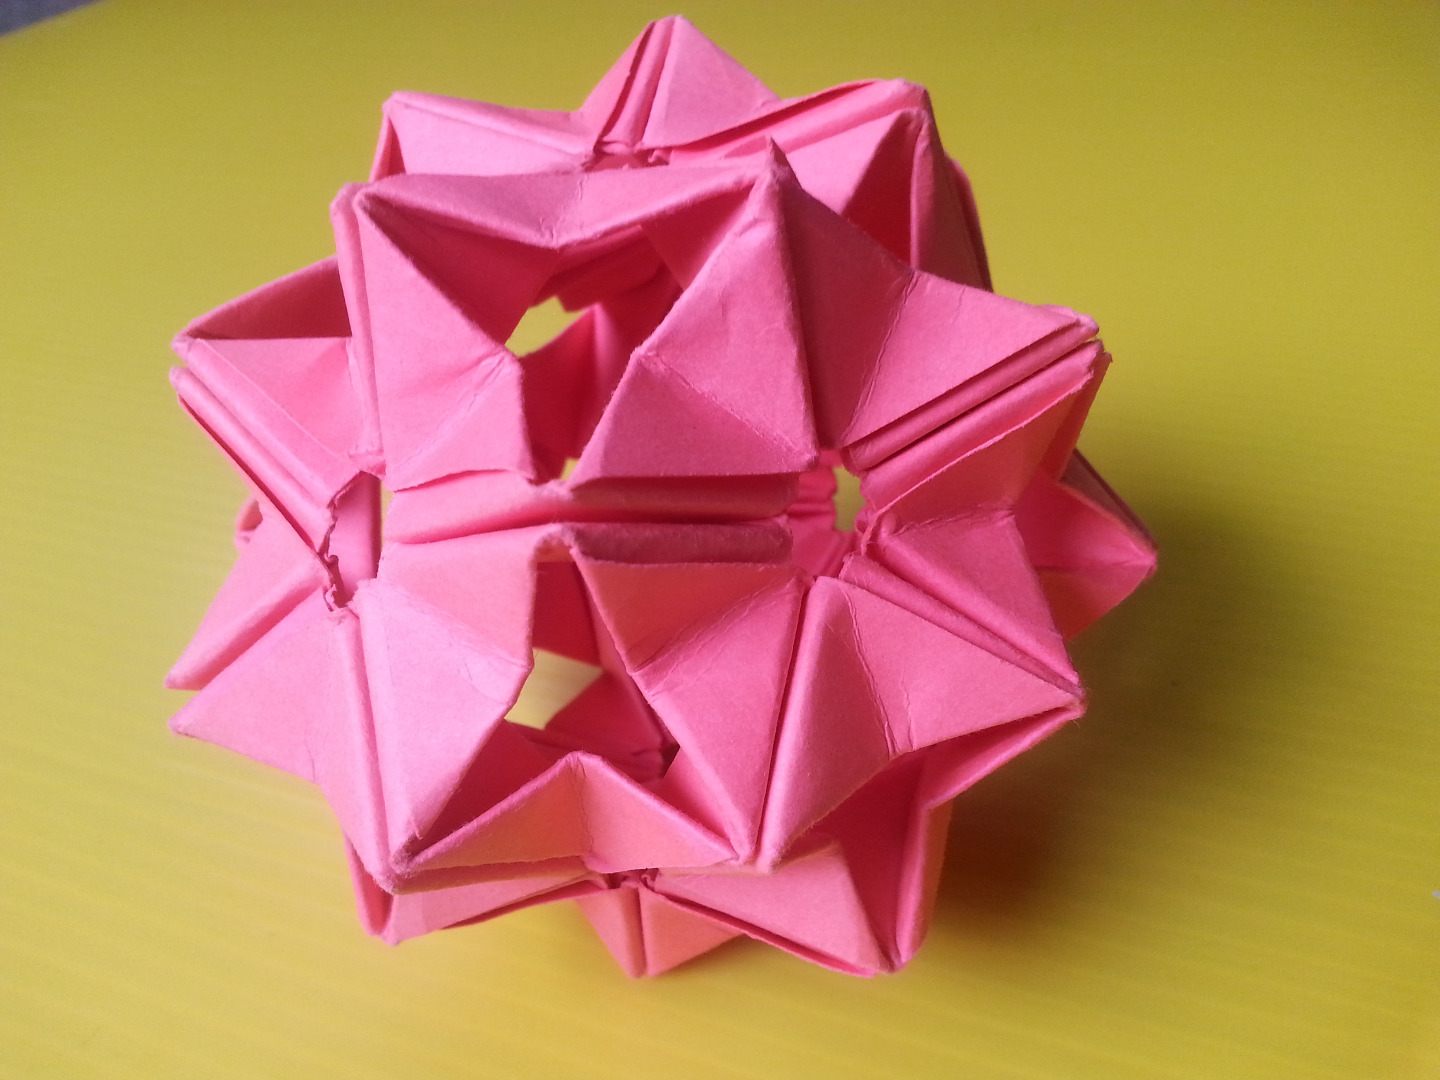 Picture of Modular Origami Unit Based on the Triangle Box